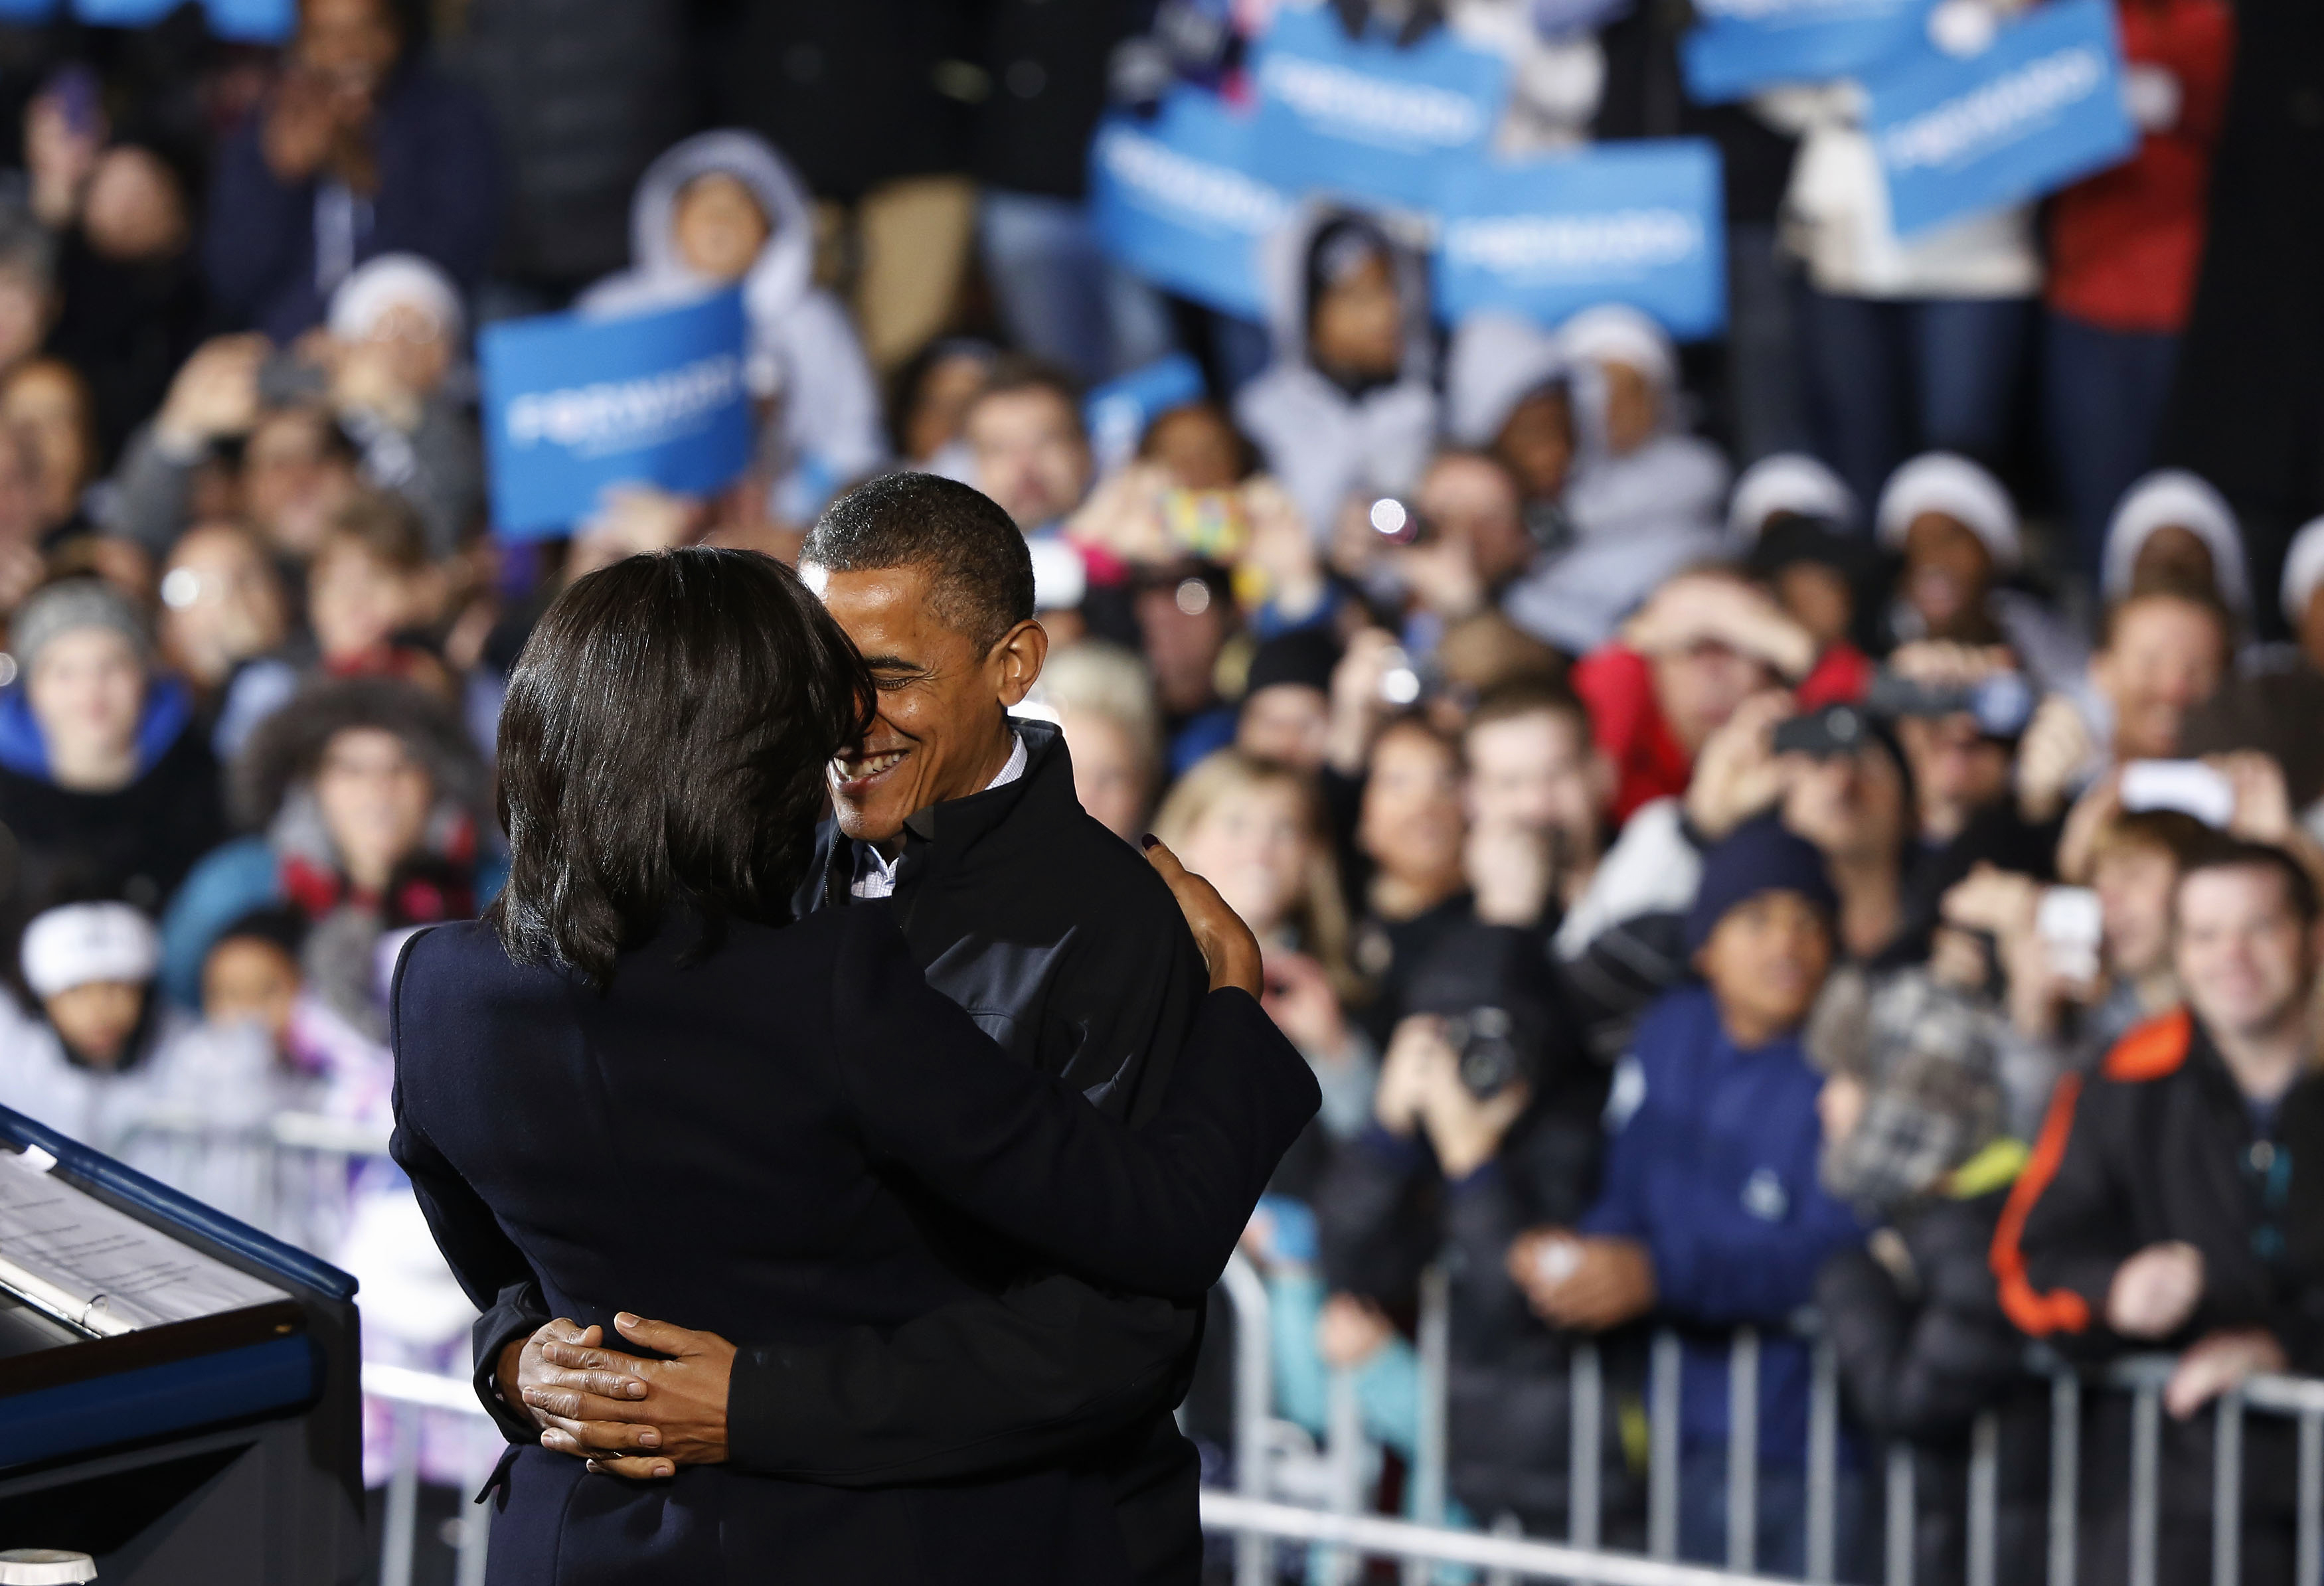 U.S. President Barack Obama hugs First Lady Michelle Obama before he addresses supporters on last night of campaign in a downtown Des Moines, Iowa, rally,